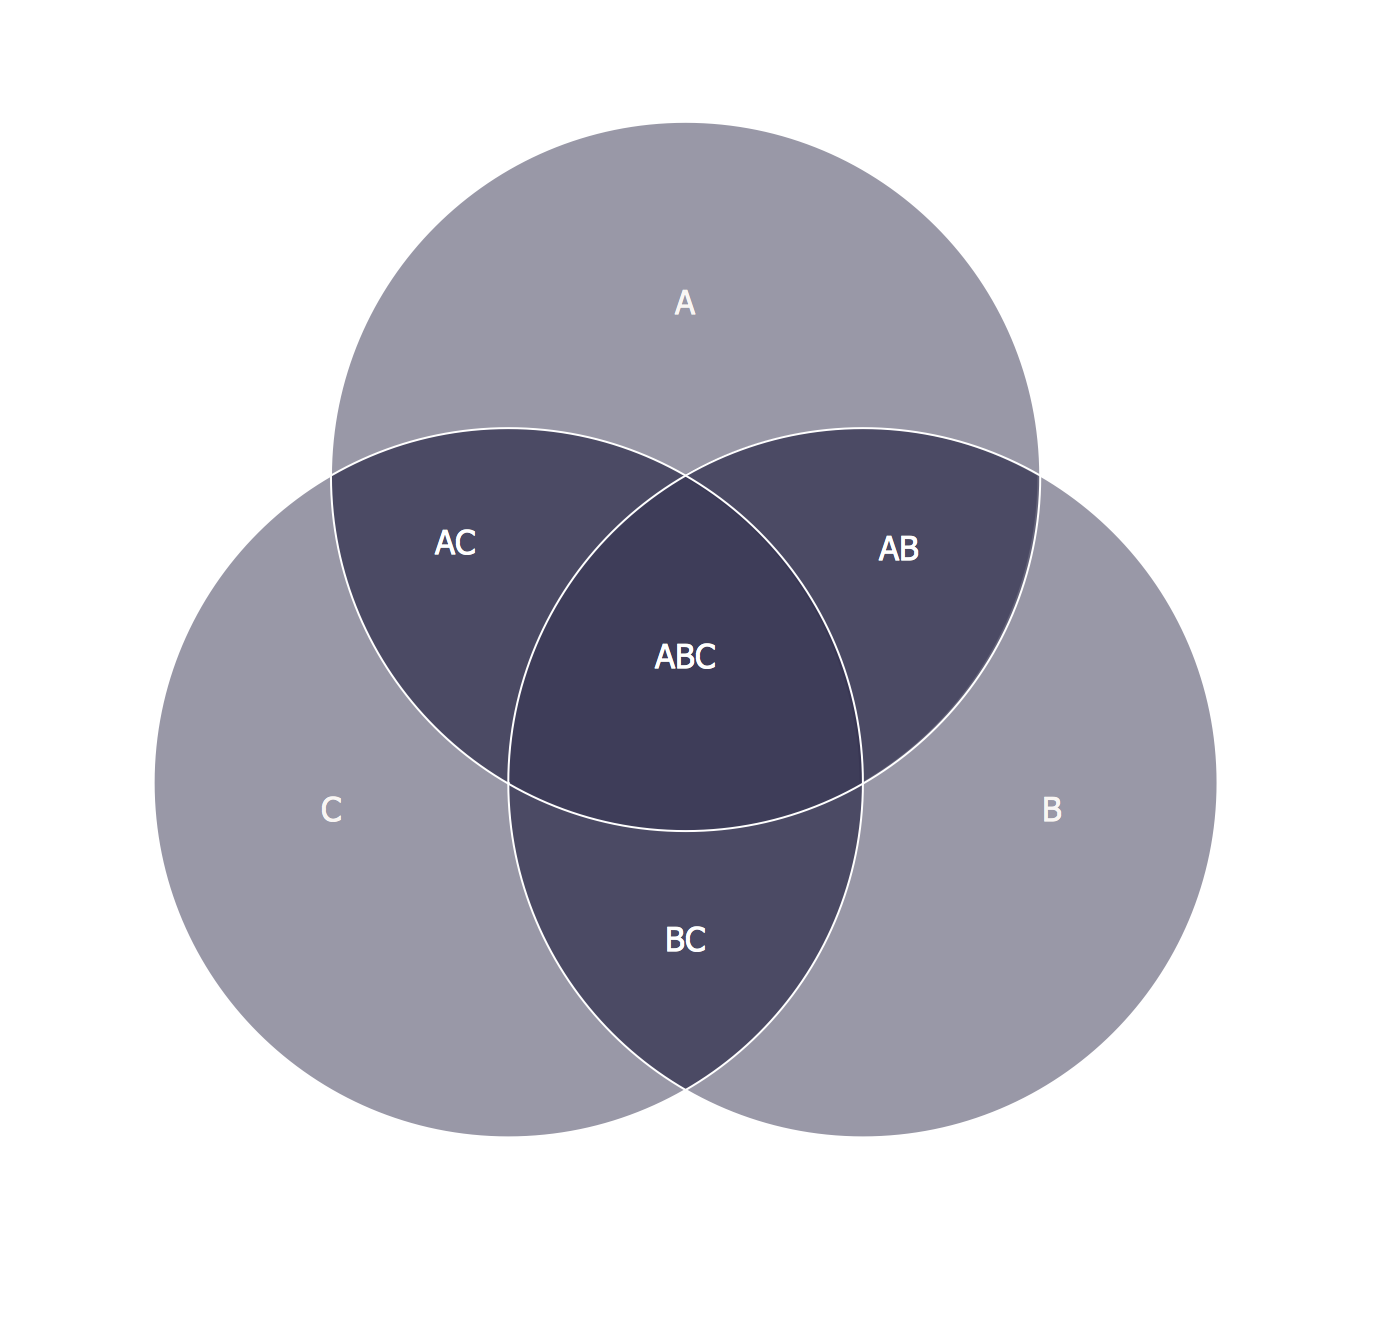 3 Circle Venn Diagram. Venn Diagram Template. Venn's ... on friend diagram, plot diagram, 3 circle map, relationship circle diagram, venn's diagram, 3 circle template, 3 circle web, 3 circle compare and contrast, overlapping circles diagram, microsoft word diagram, math diagram, market circle diagram, blank vin diagram, vnn diagram, three-ring diagram, college student life diagram, 5 circle diagram, ven diagram, 3 circle chart,